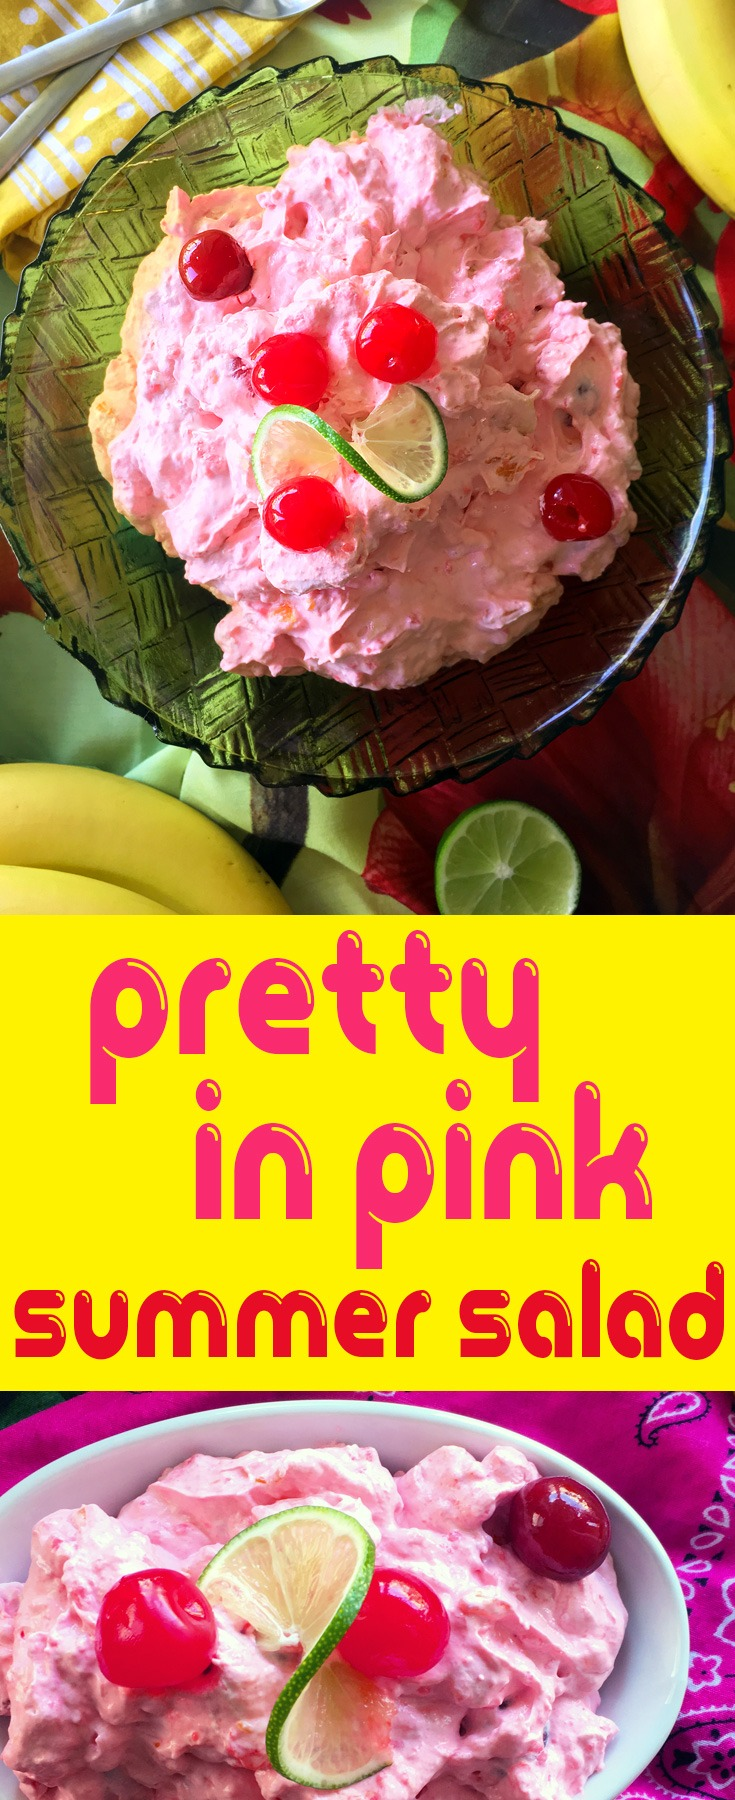 Cherry 7 Up Salad - A Pretty in Pink Summer Salad with 7 Up Cherry, bananas, maraschino cherries, and mandarin oranges.